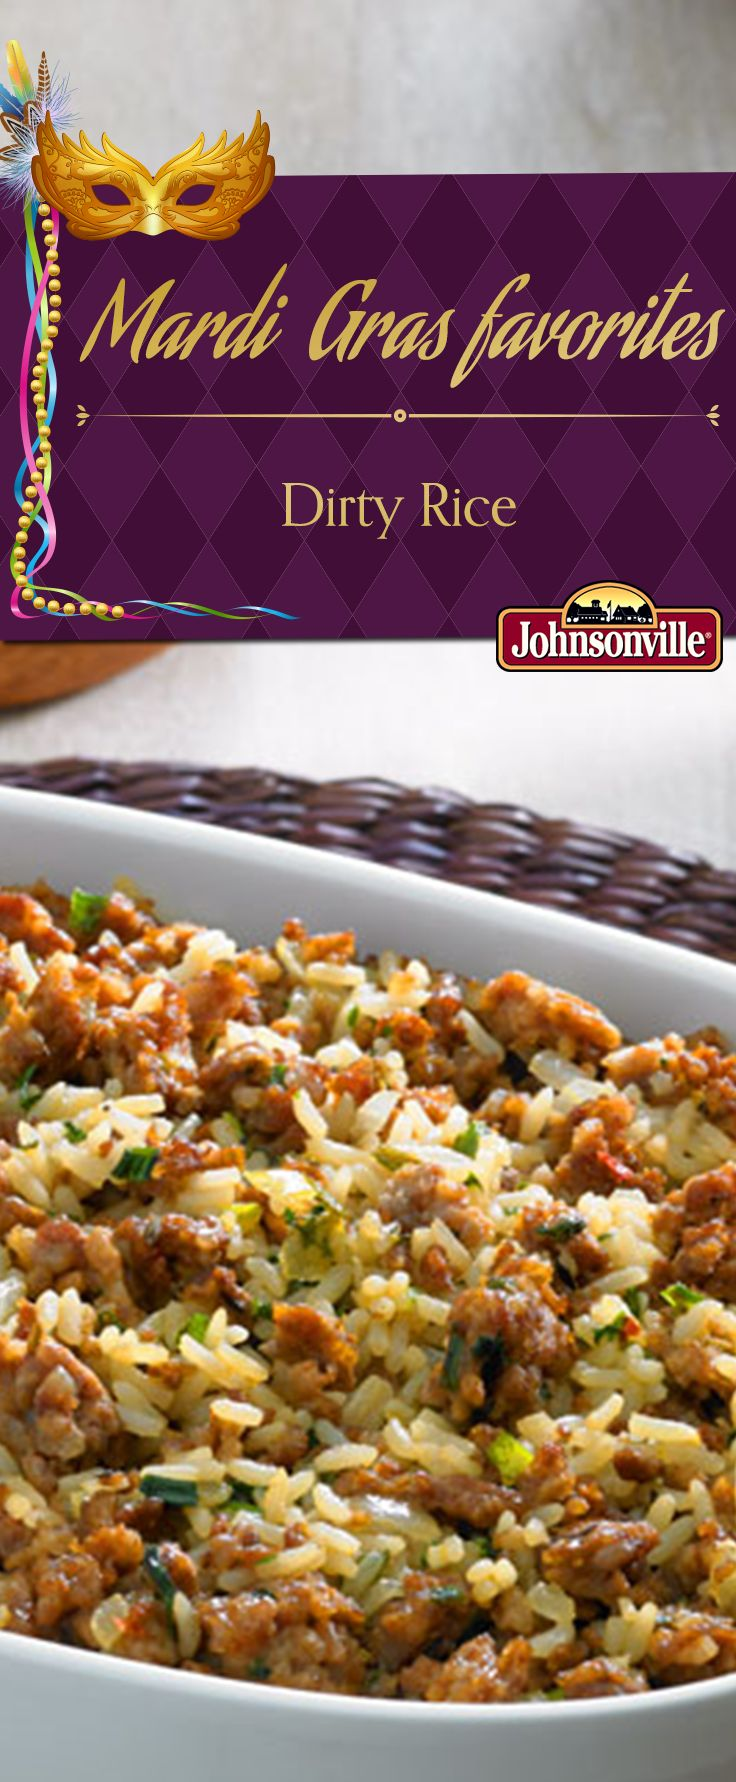 This Dirty Rice made with Johnsonville Hot Italian Sausage is the perfect addition to your Fat Tuesday Celebration!